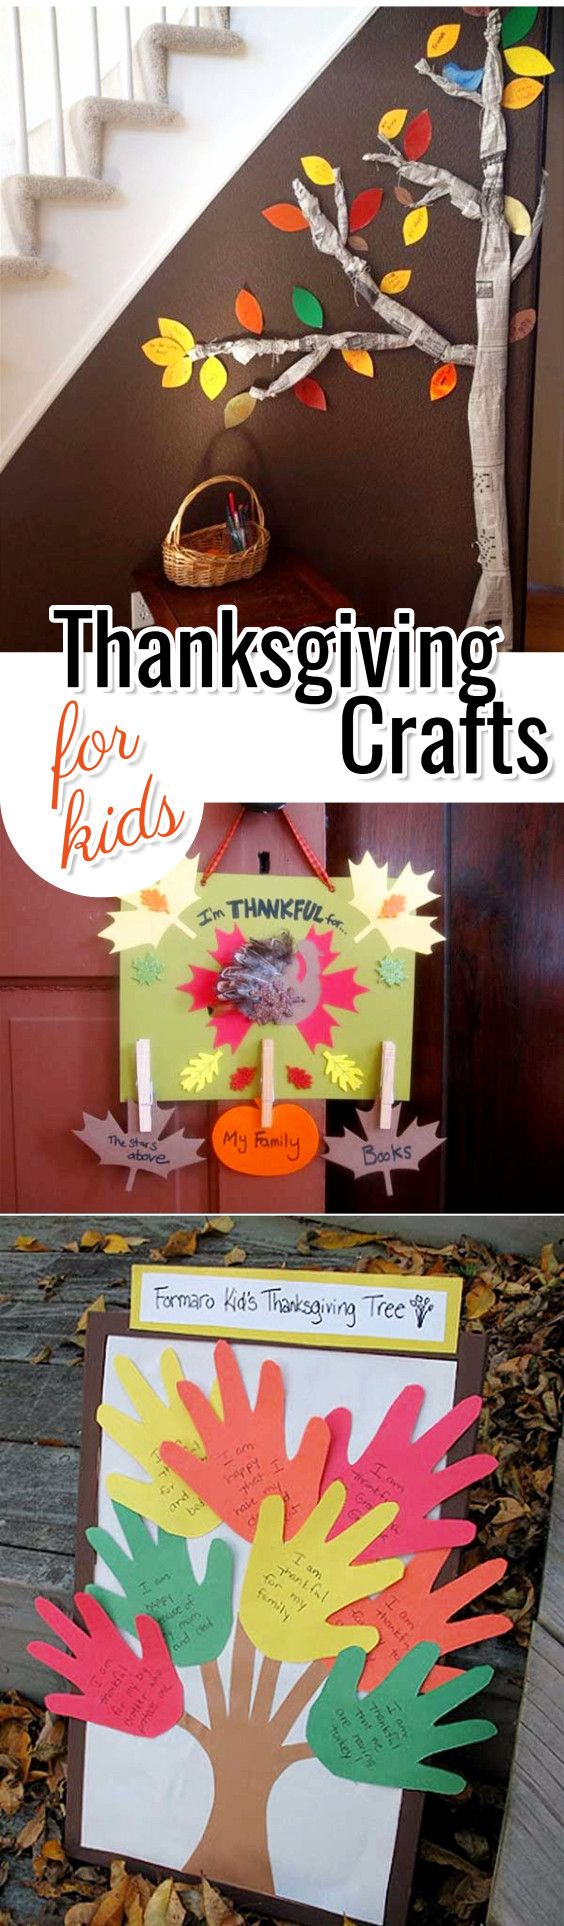 Thanksgiving Crafts for Kids - Fun and Easy Kids Craft Ideas for Thanksgiving